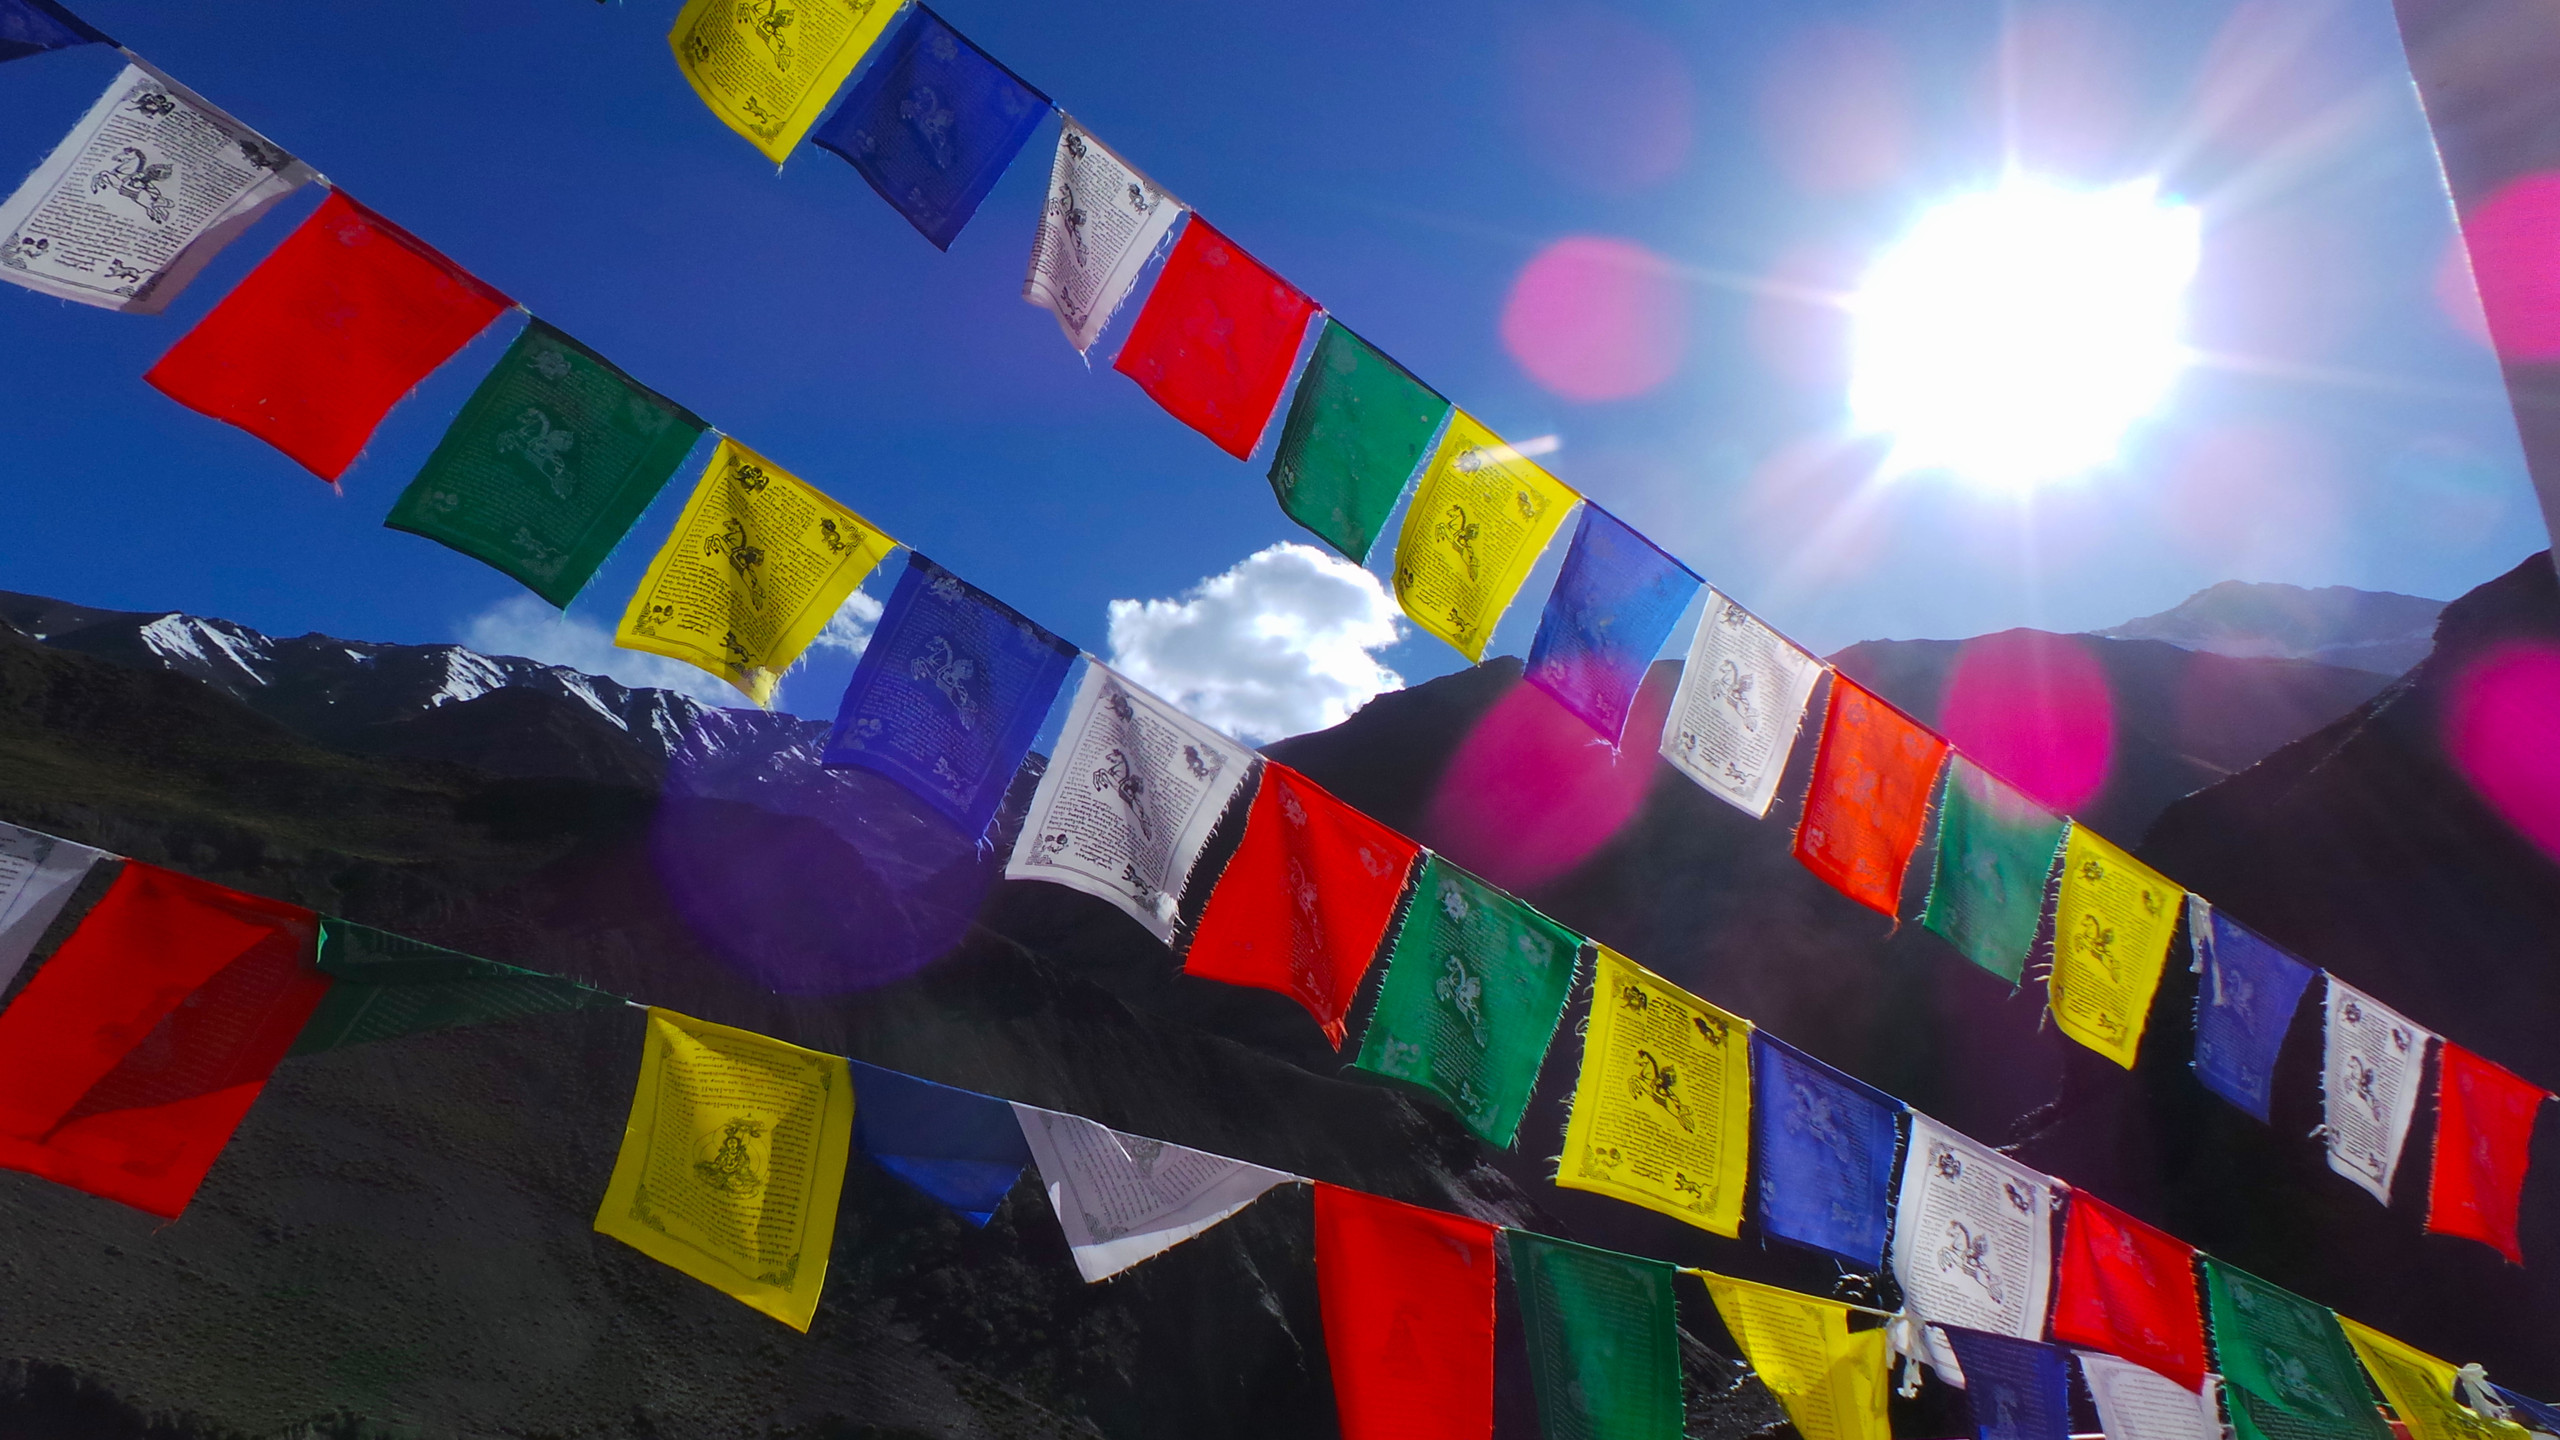 Tibetan prayer flags blowing in the breeze that carries their blessings to all it touches.